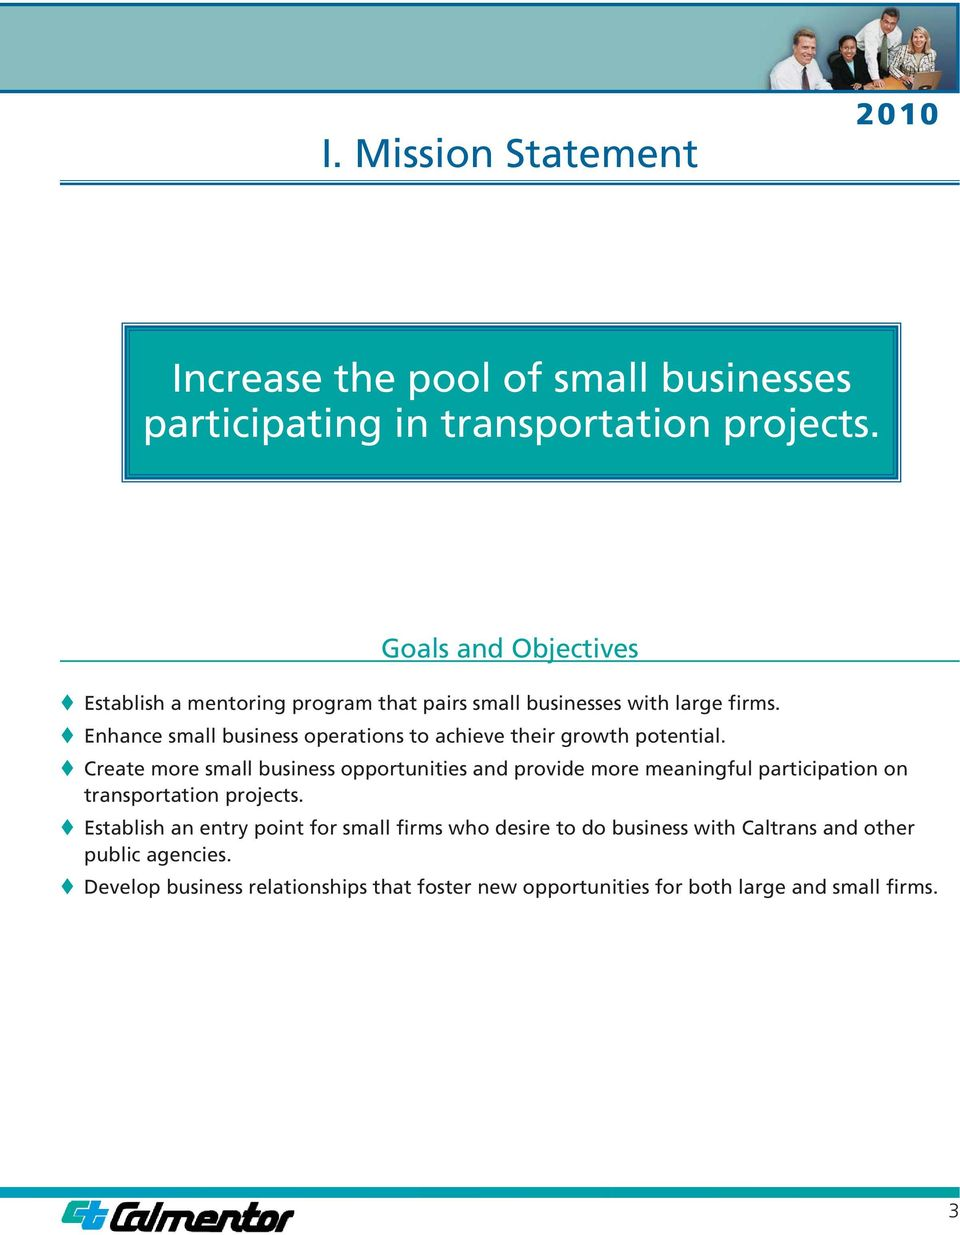 Enhance small business operations to achieve their growth potential.